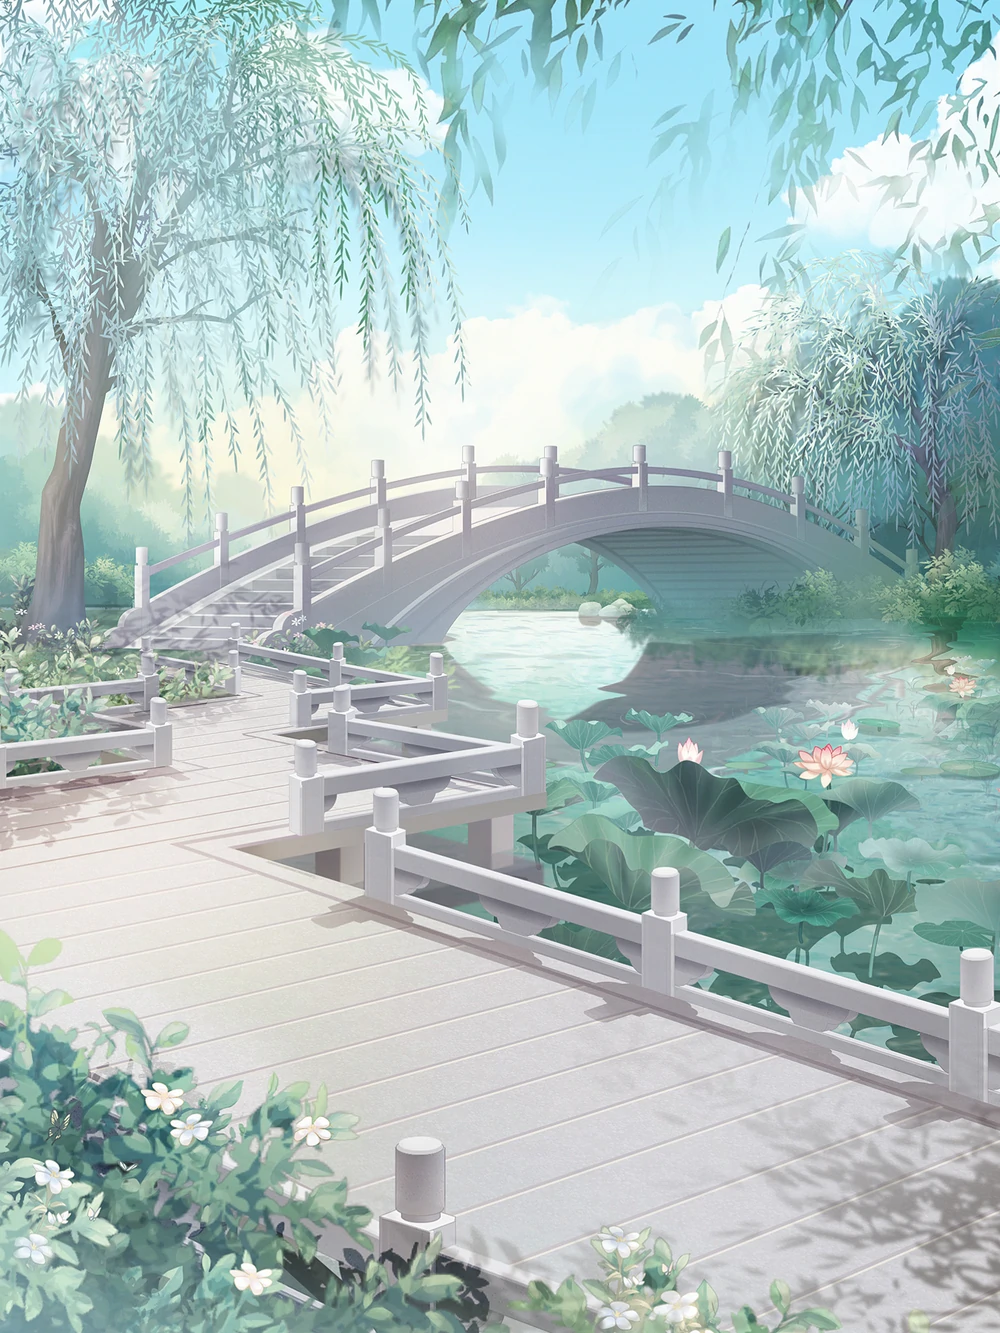 Backgrounds/Gallery